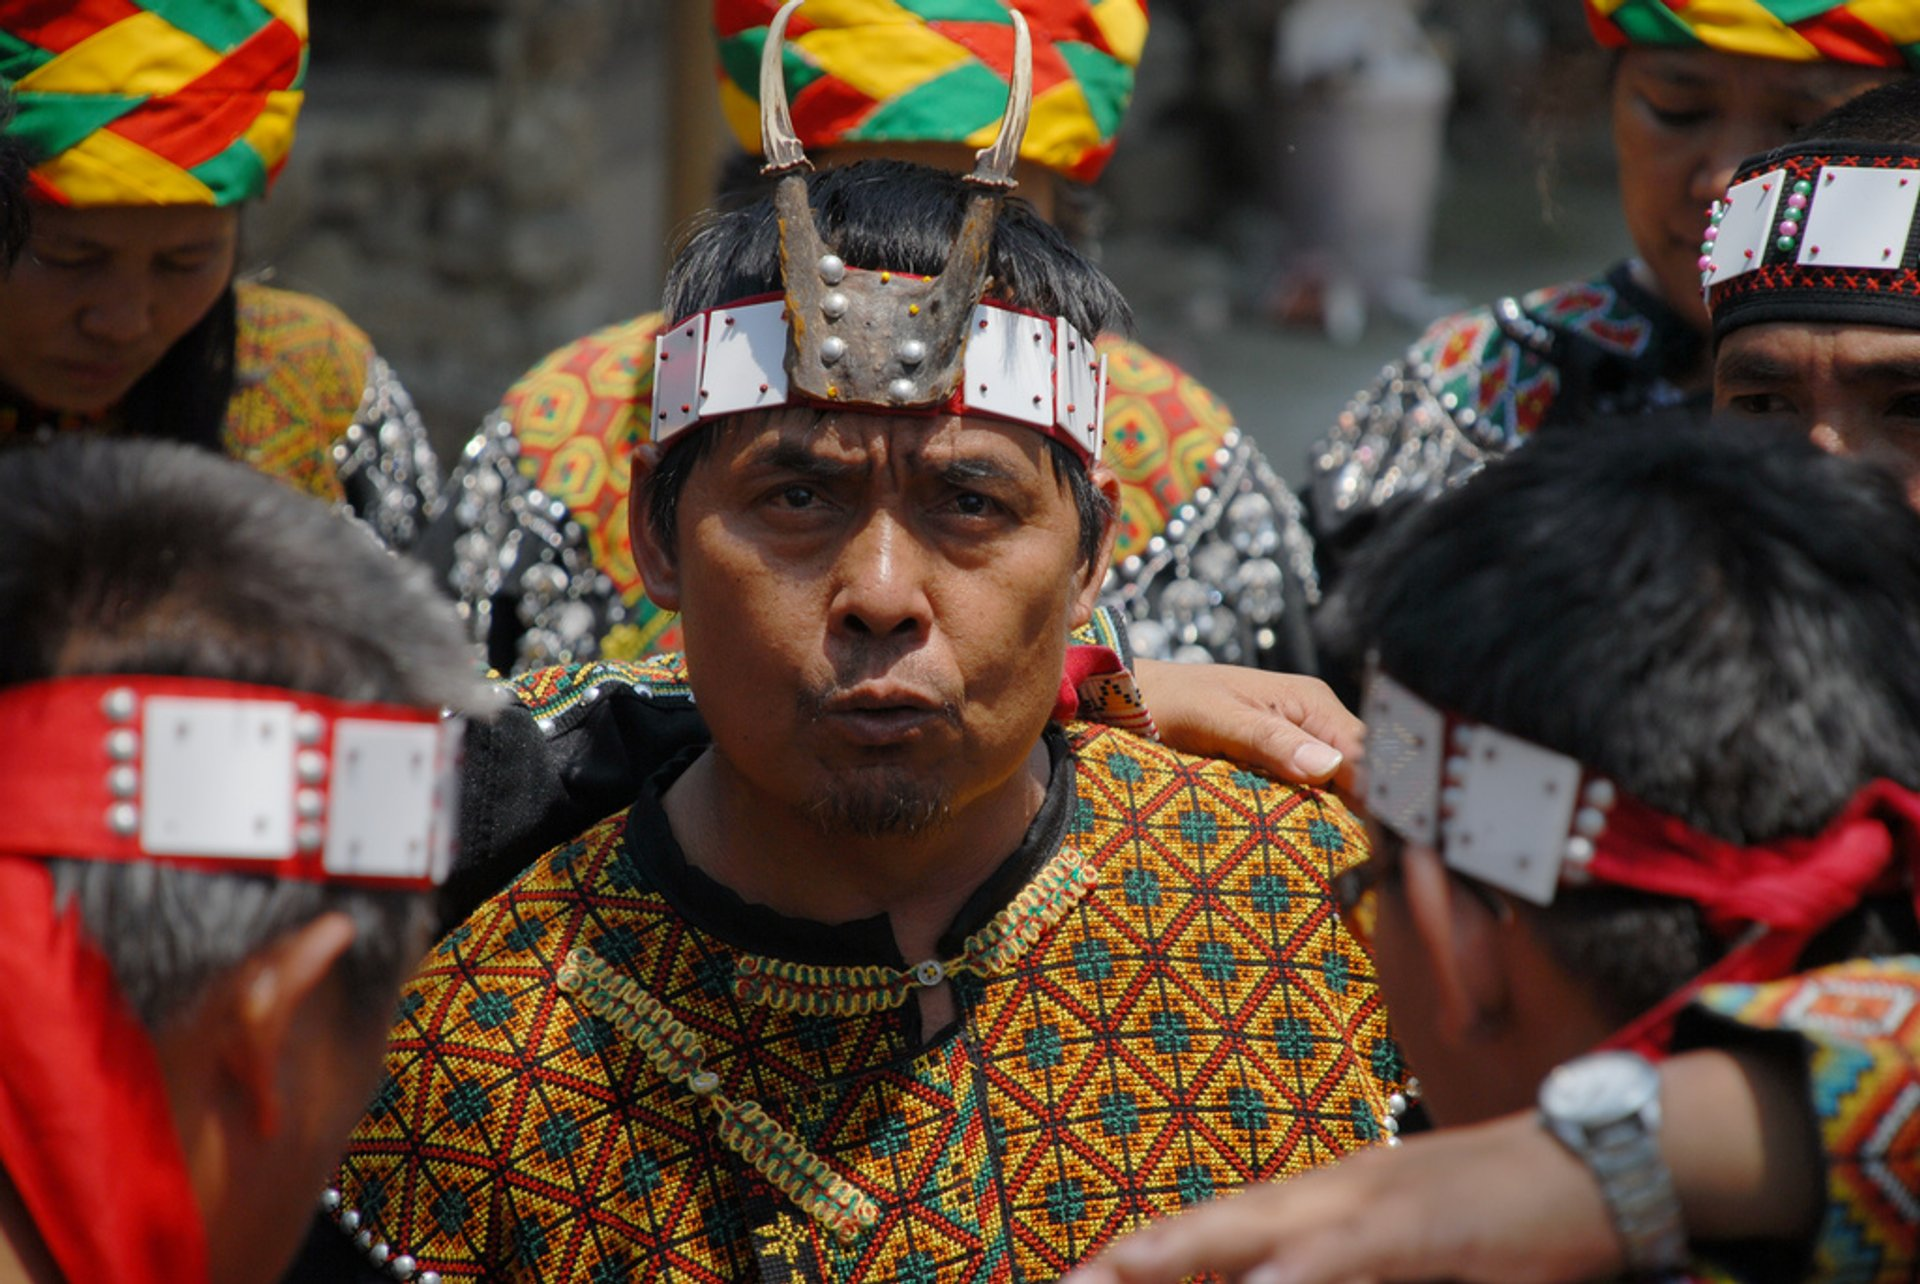 Ear-Shooting Festival (Mala-Ta-Ngia) of Bunun Tribe in Taiwan - Best Season 2020